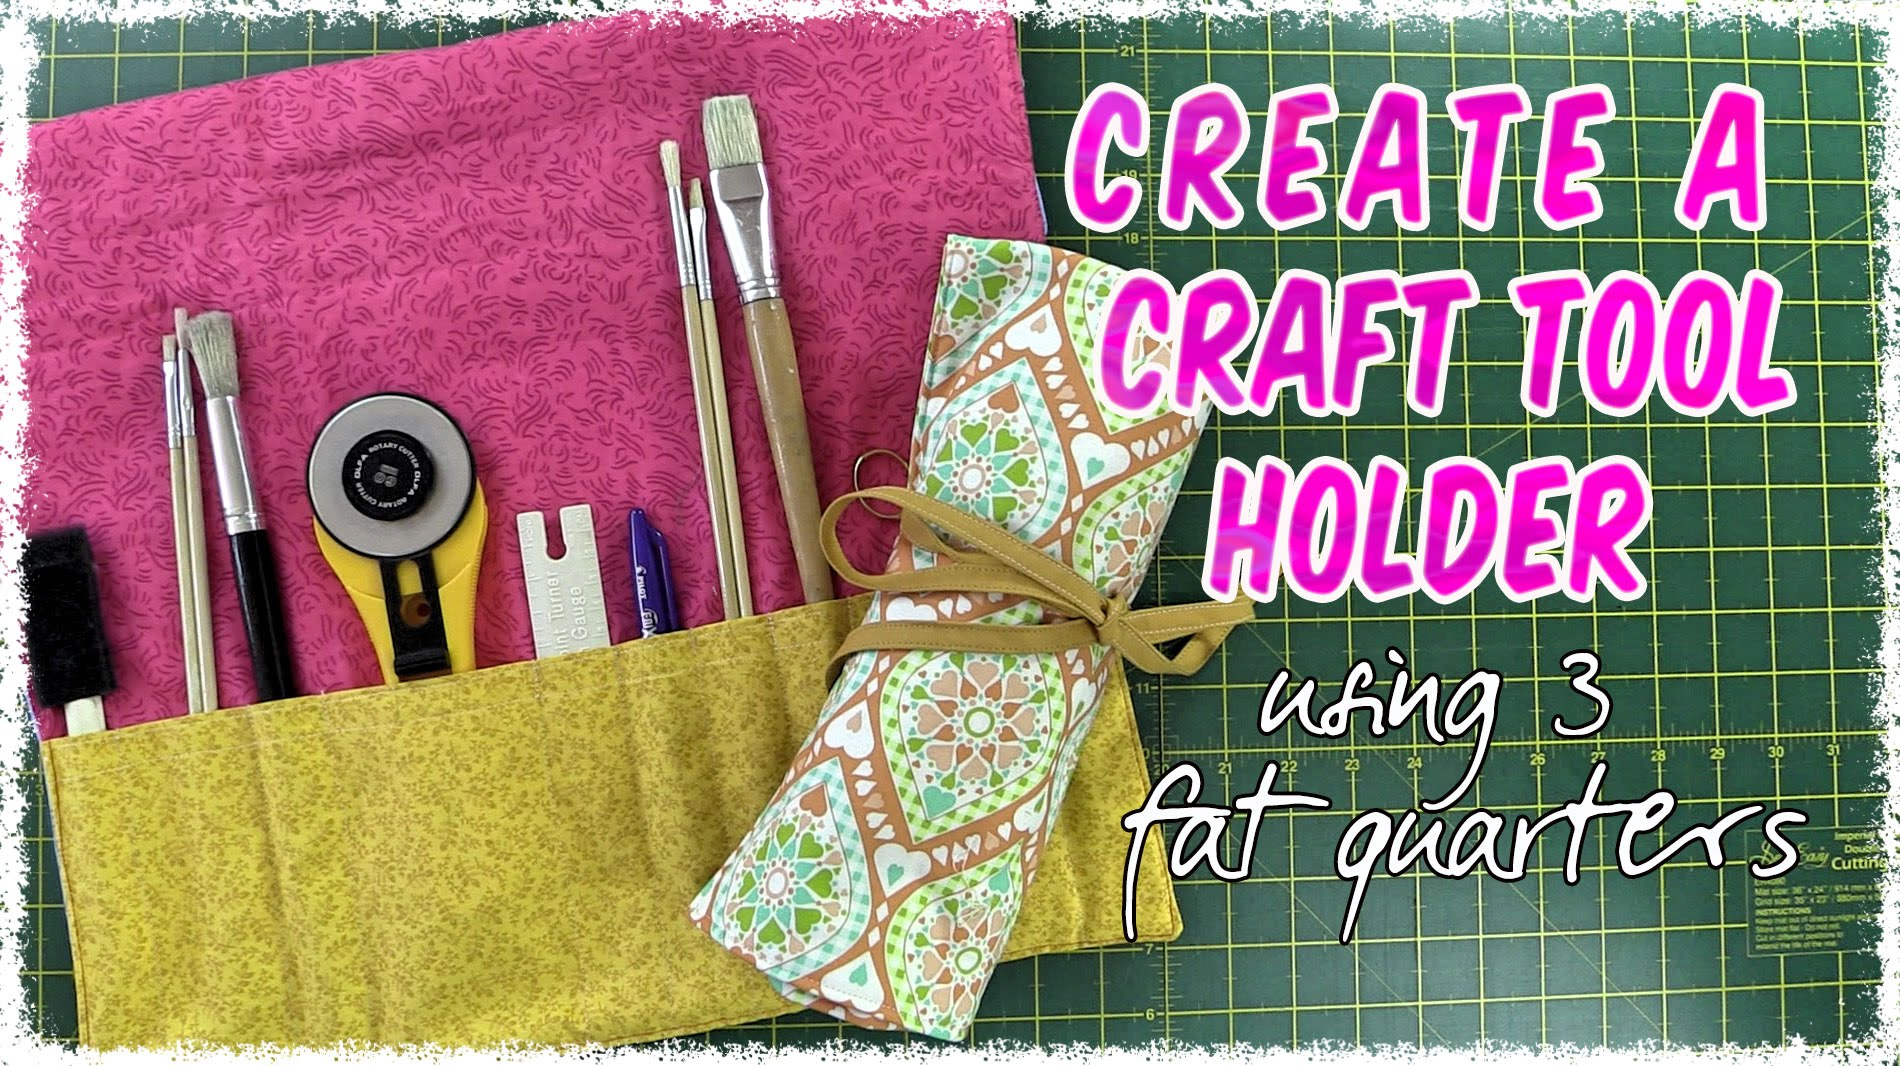 Easy to Make Sewing/Craft Tools Roll-up Holder Using 3 Fat Quarters